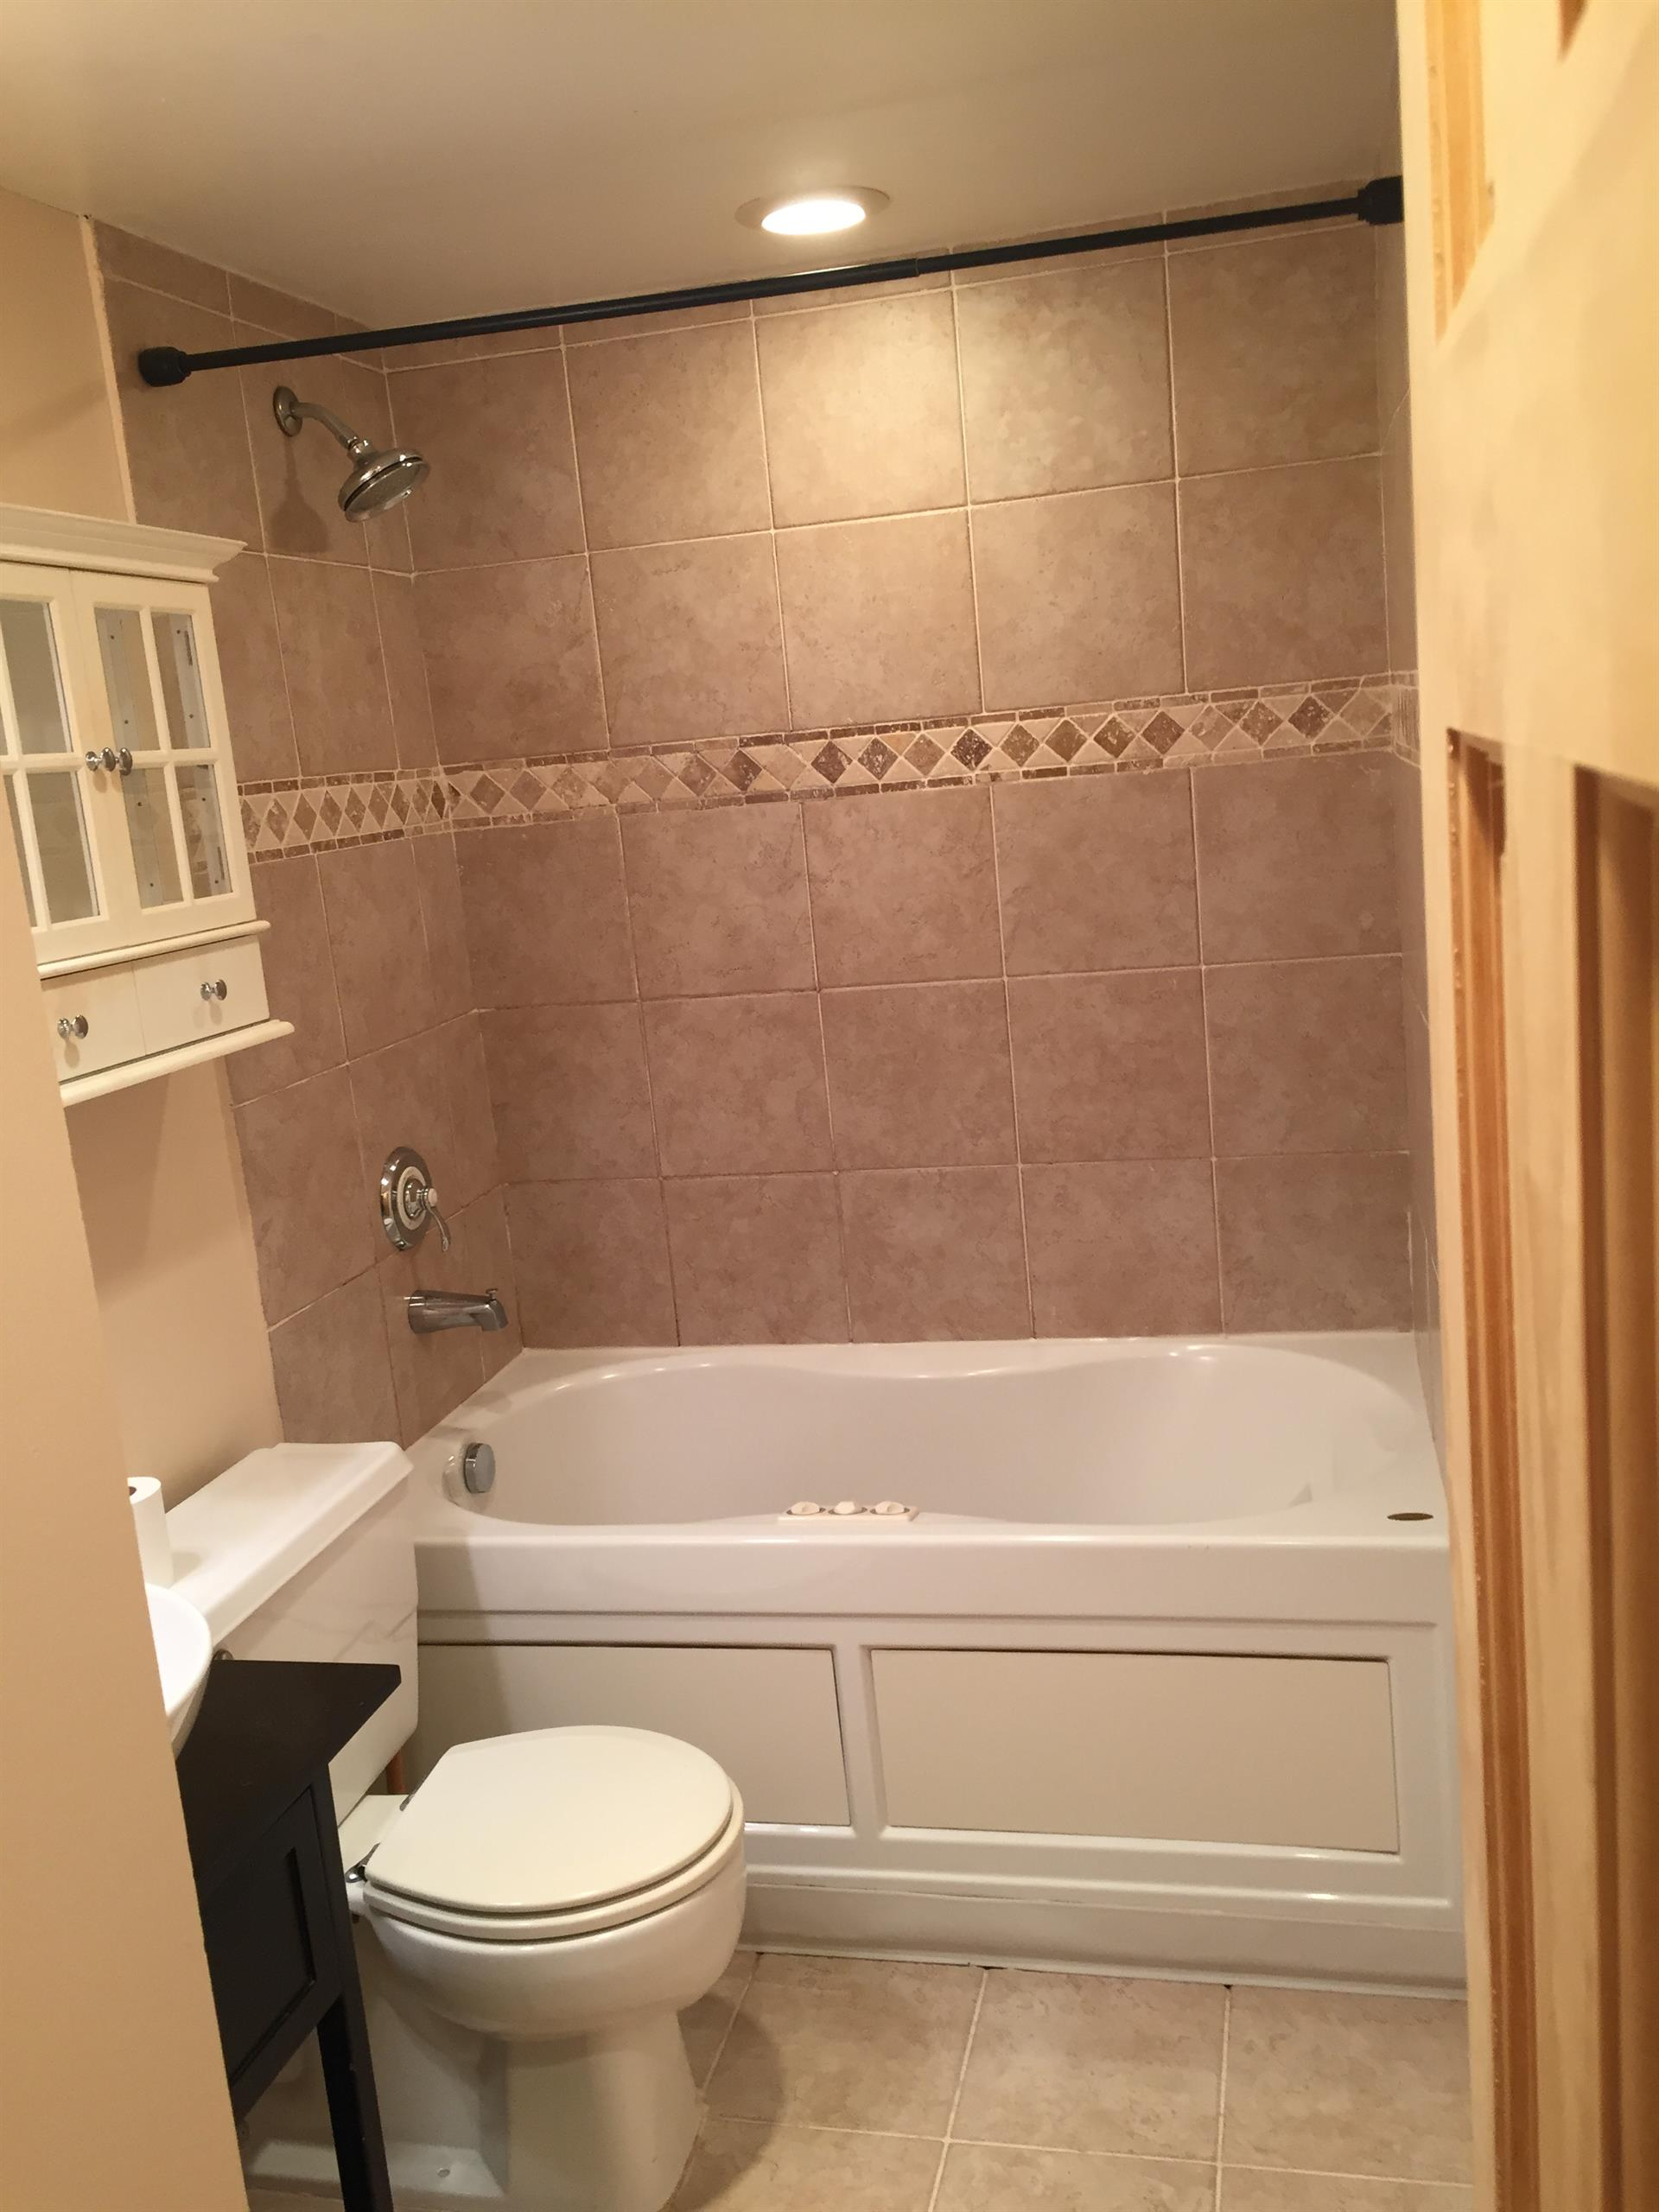 Additional photo for property listing at 9967 Shore Road  Brooklyn, New York 11209 United States